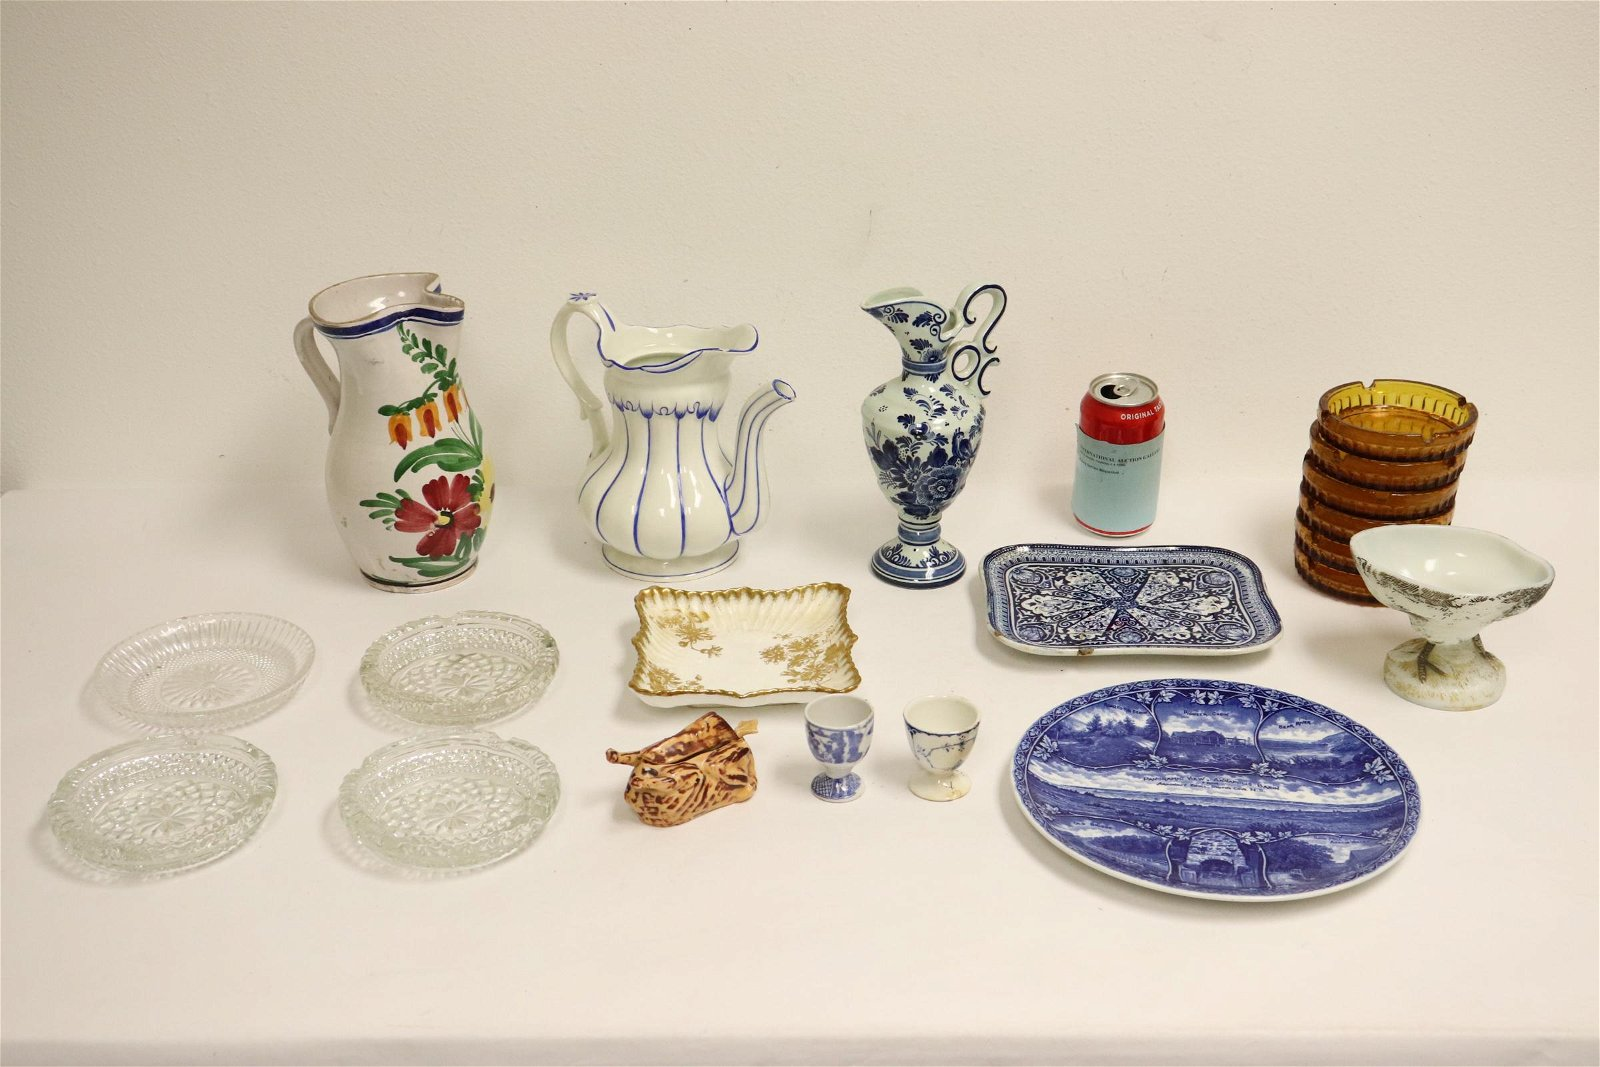 Lot of misc. porcelain and glasses